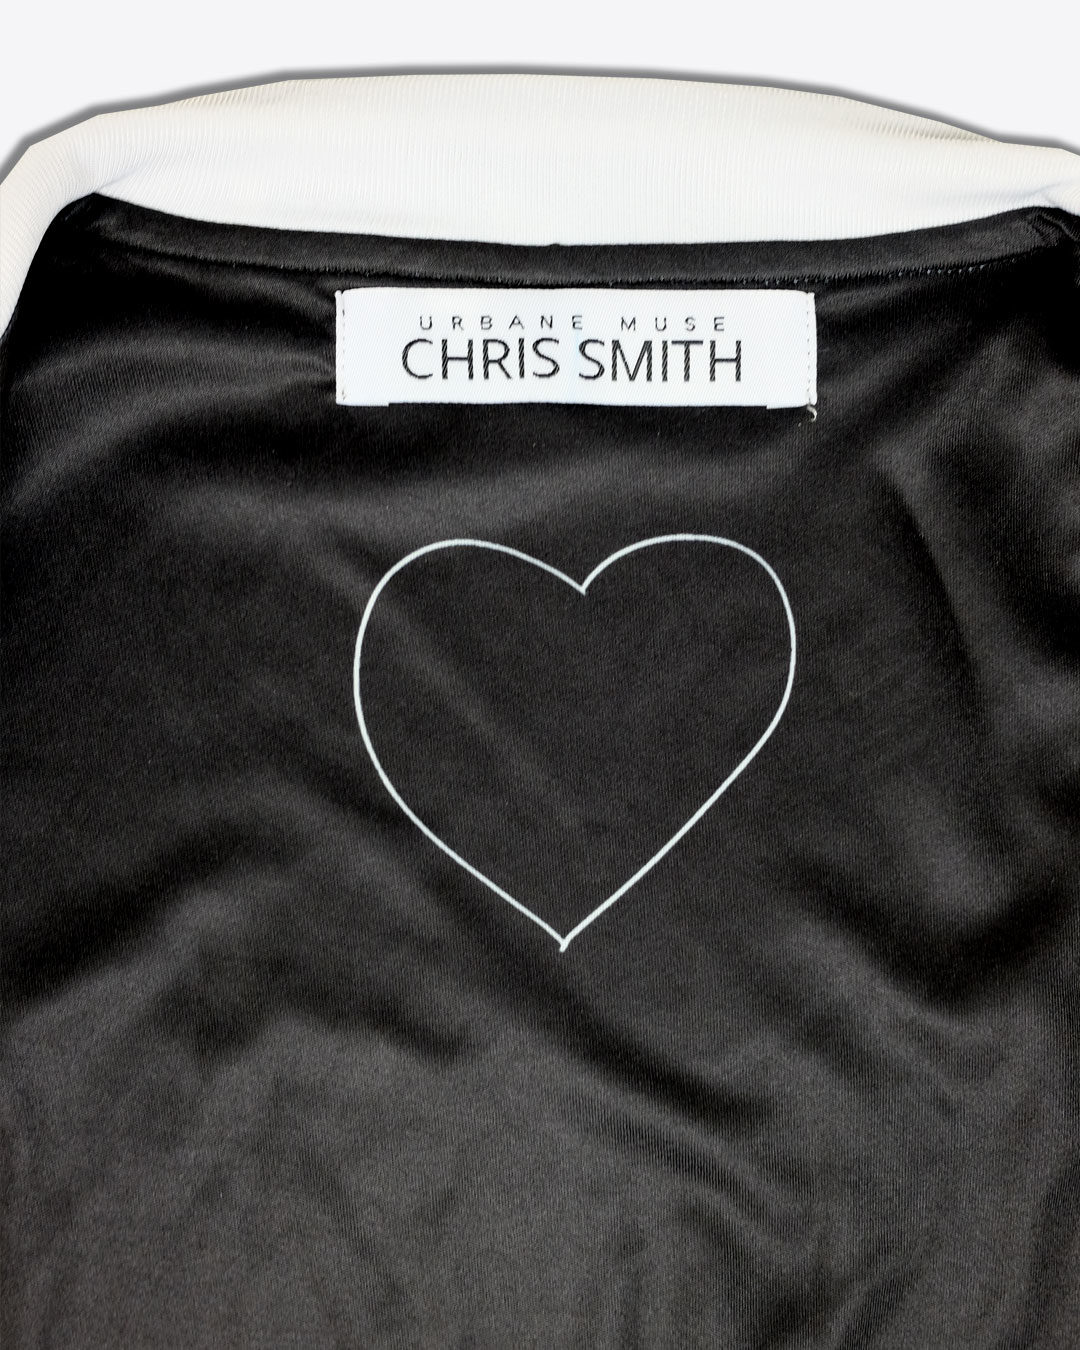 HEART-LOGO-photo6-URBANE-MUSE-CHRIS-SMITH-BOMBER-JACKET-with-Lining